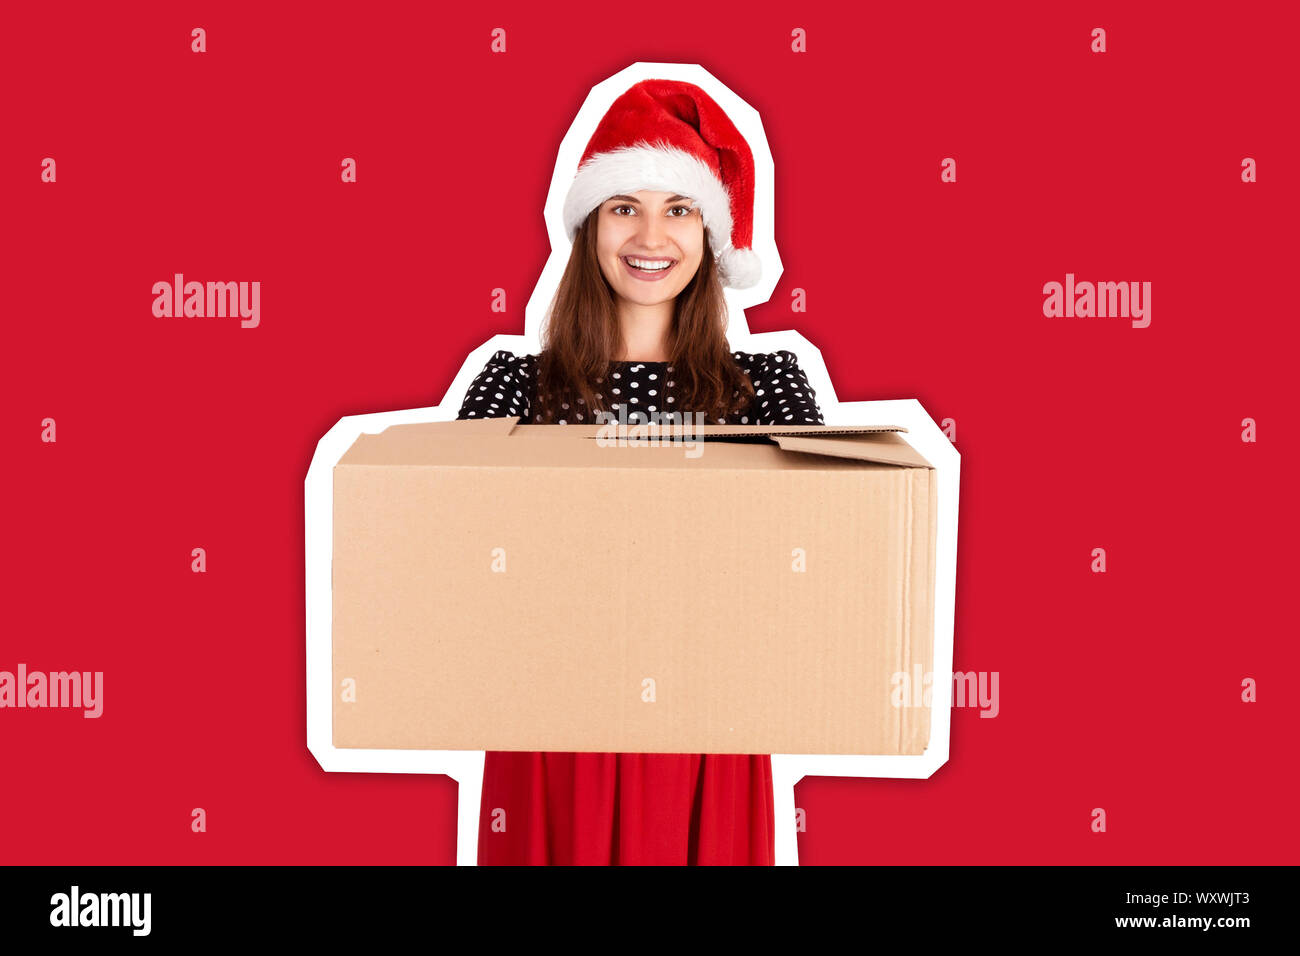 Cheerful happy girl in christmas hat giving a big carton present with blue ribbon. Magazine collage style with trendy color background. holidays conce Stock Photo